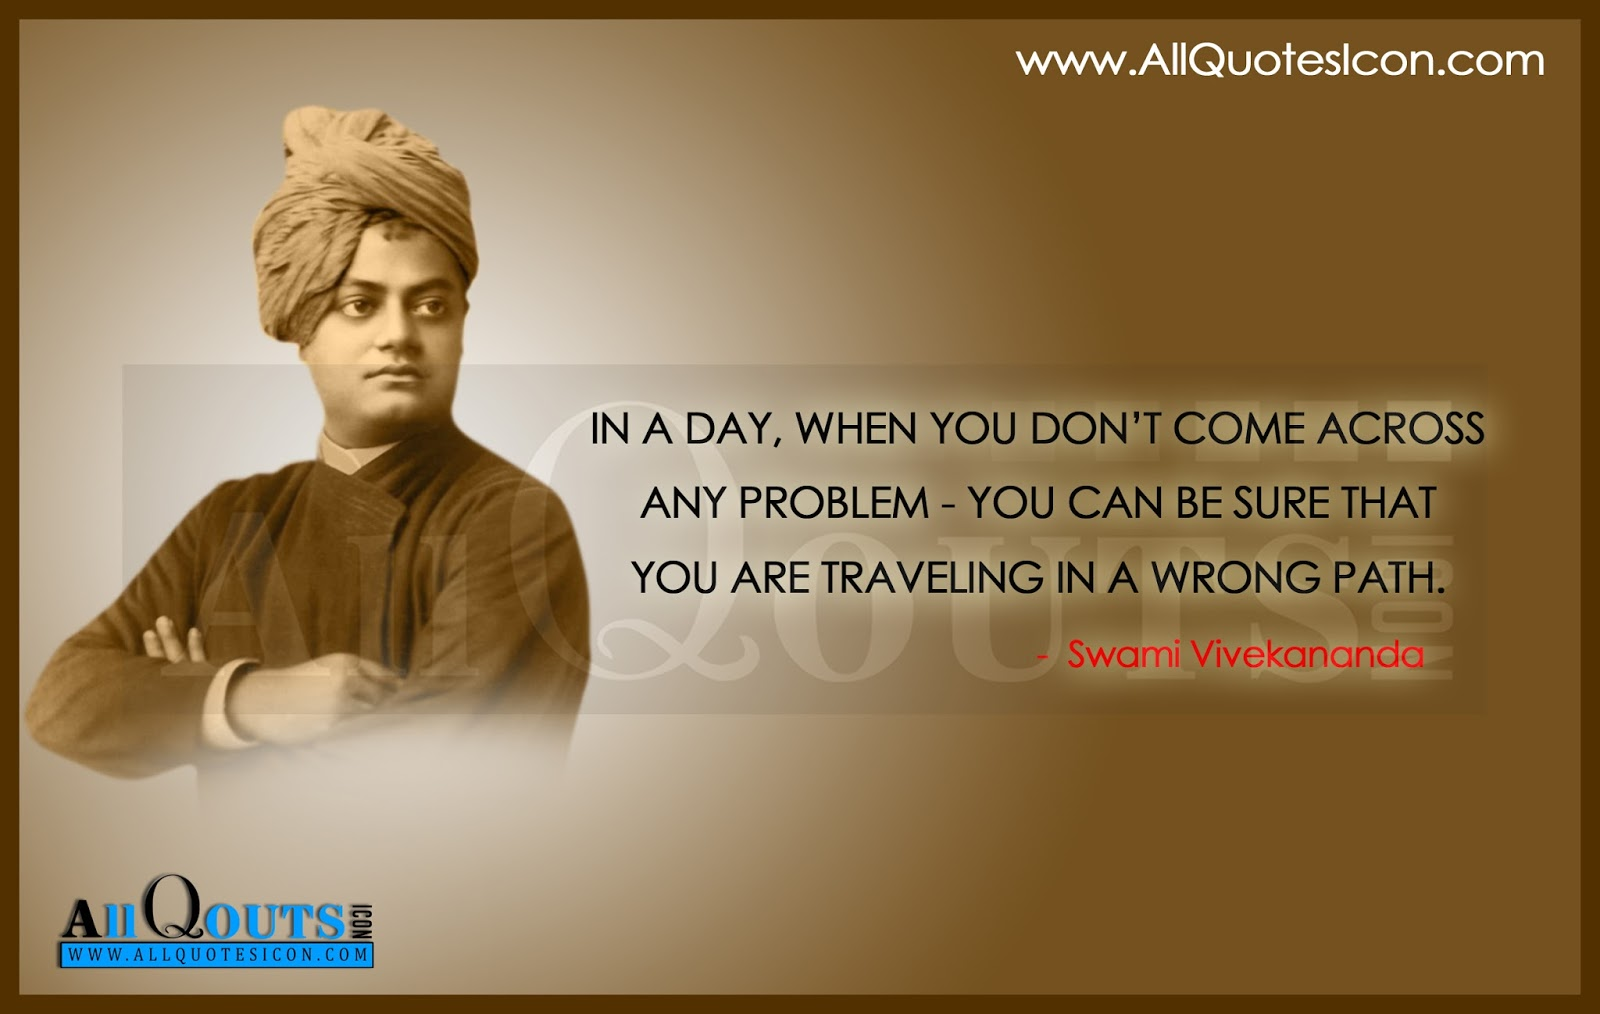 swami vivekananda life quotes and images www